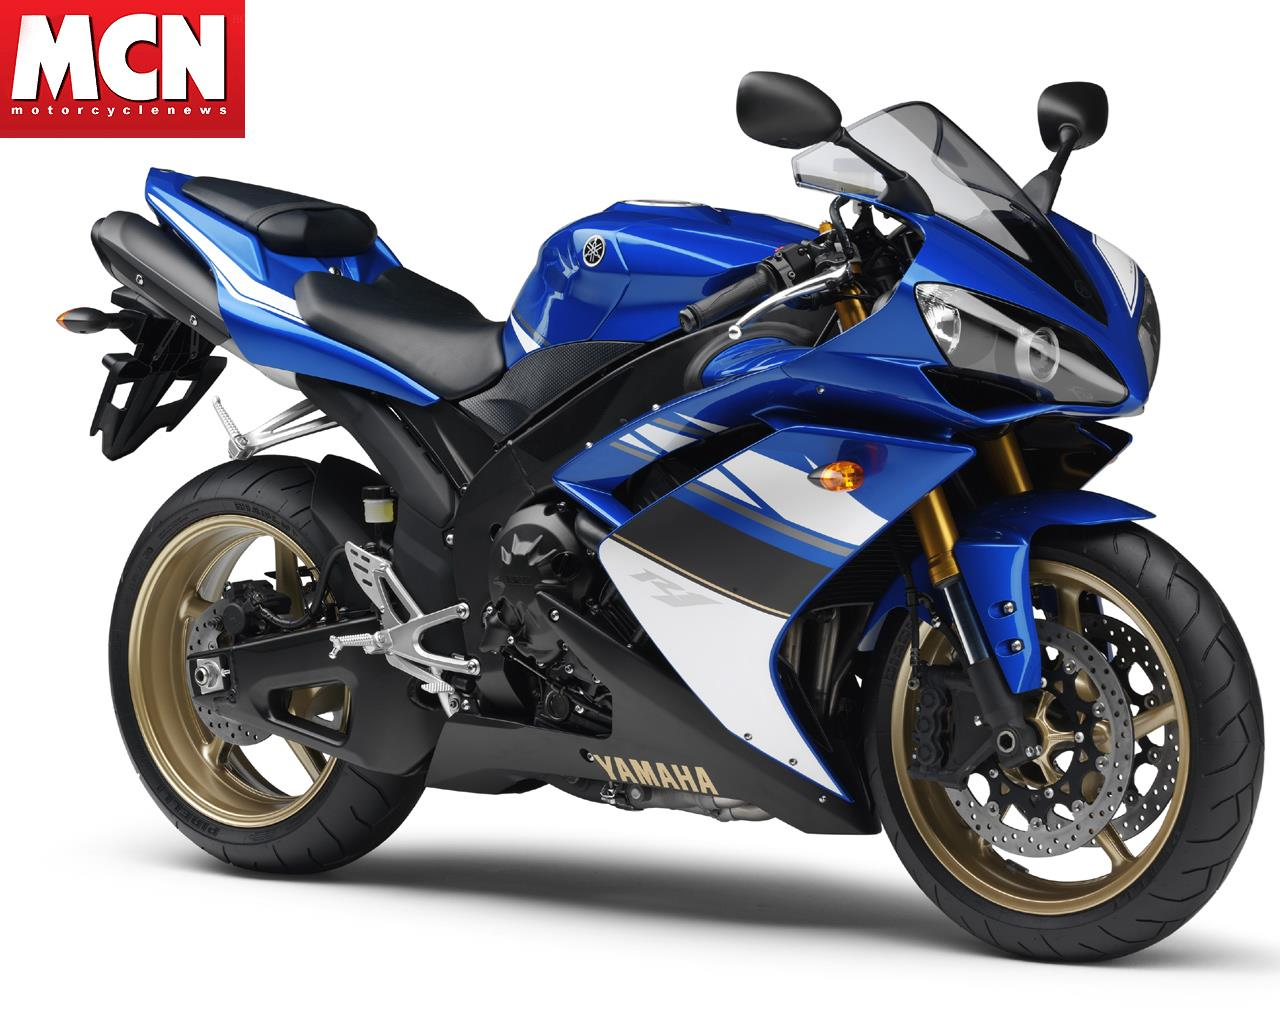 New colours for the 2008 Yamaha R1 motorcycle | MCN